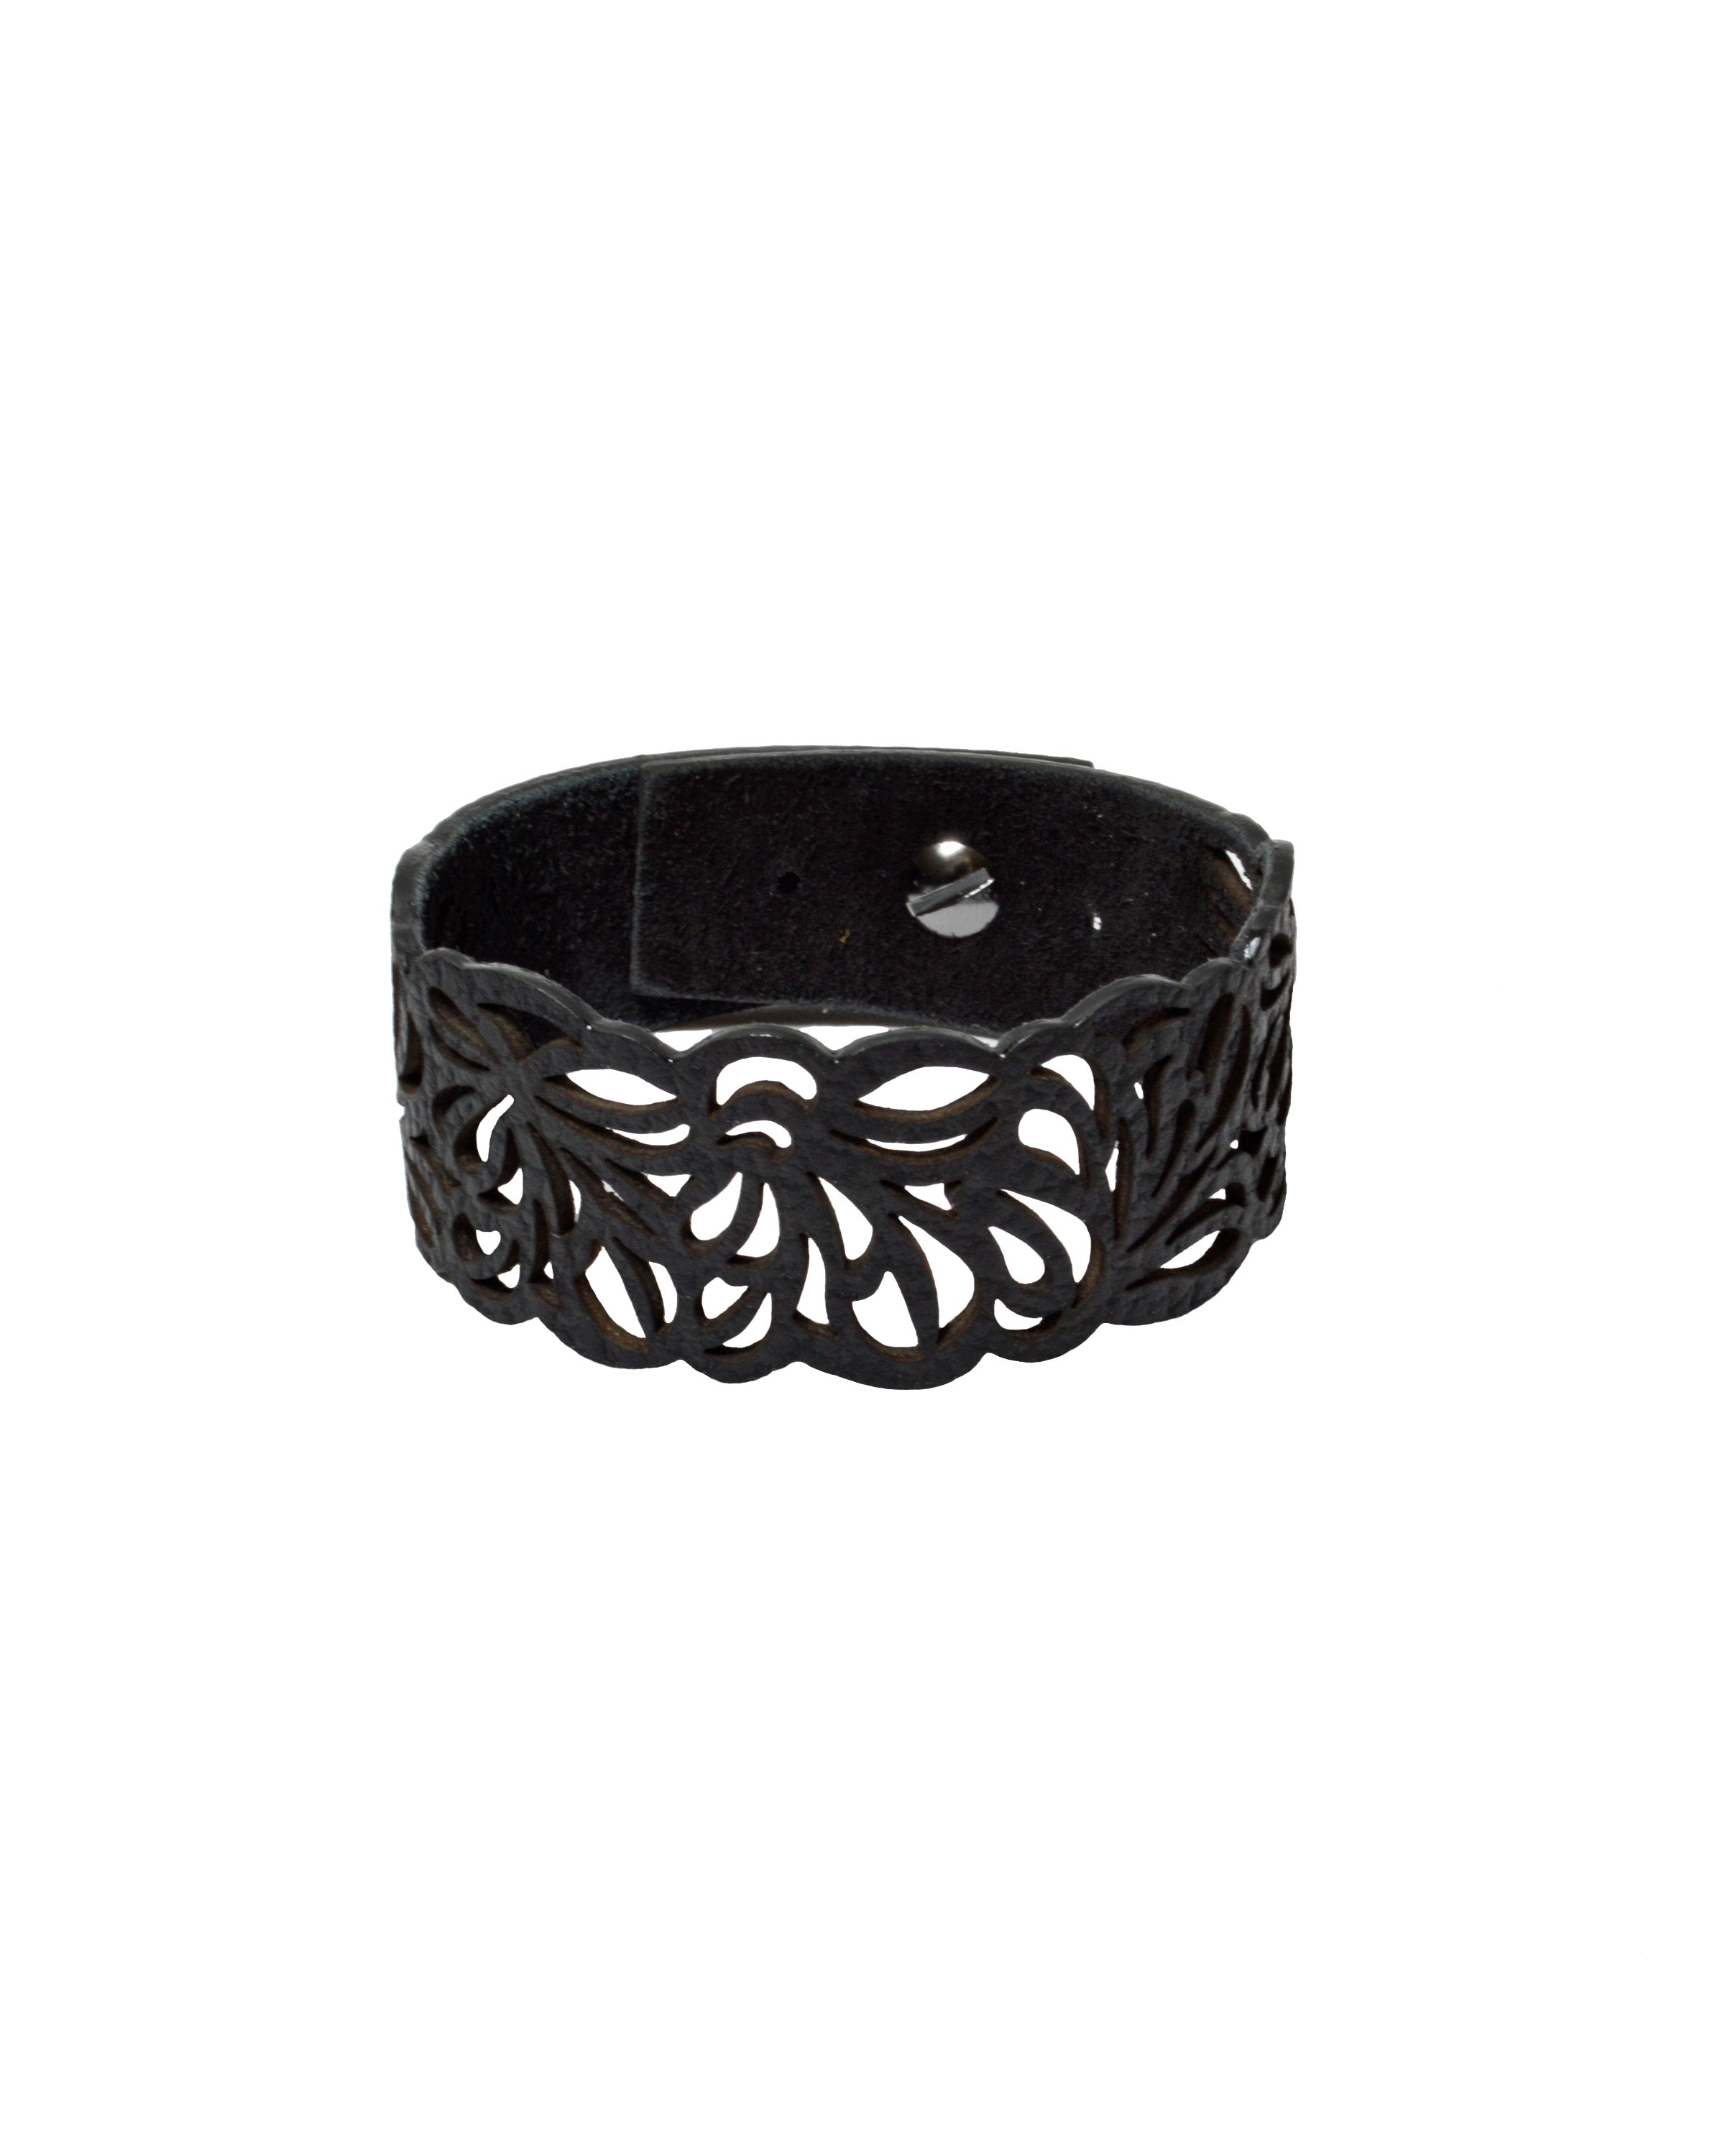 TYCHE Black leather bracelet, Elena Designs, Victoria BC